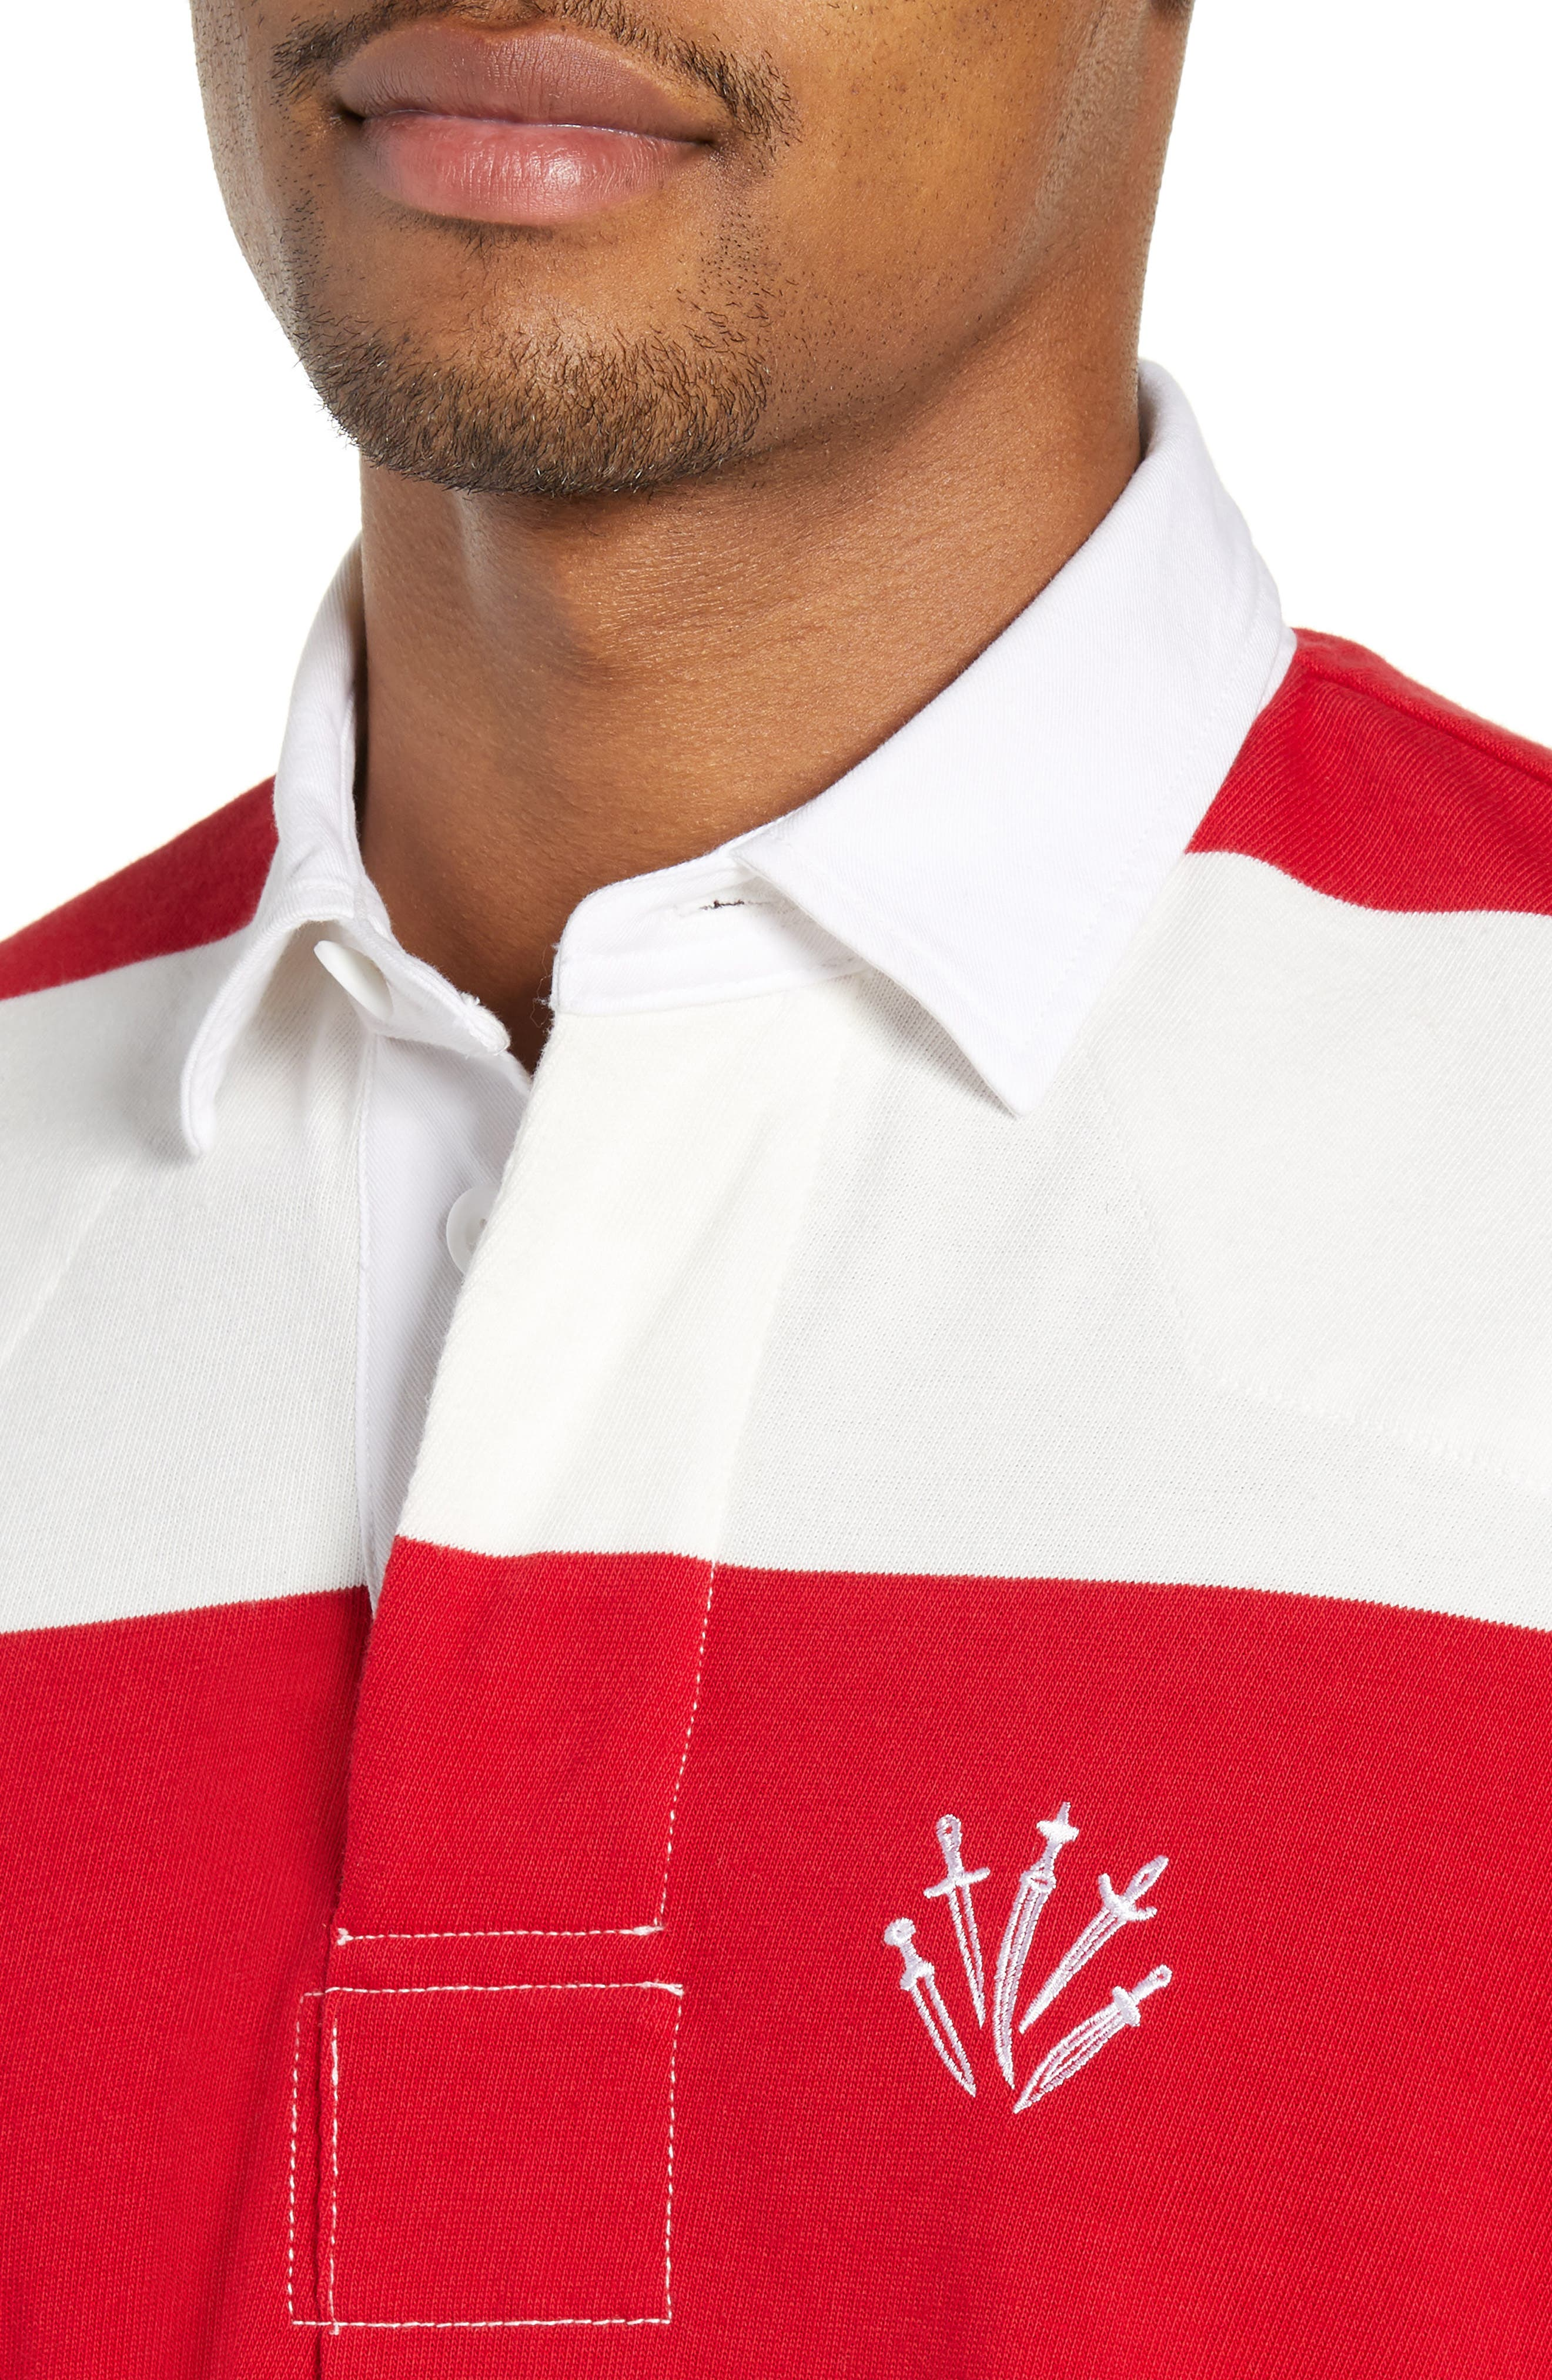 Regular Fit Rugby Shirt,                             Alternate thumbnail 4, color,                             RED/ IVORY